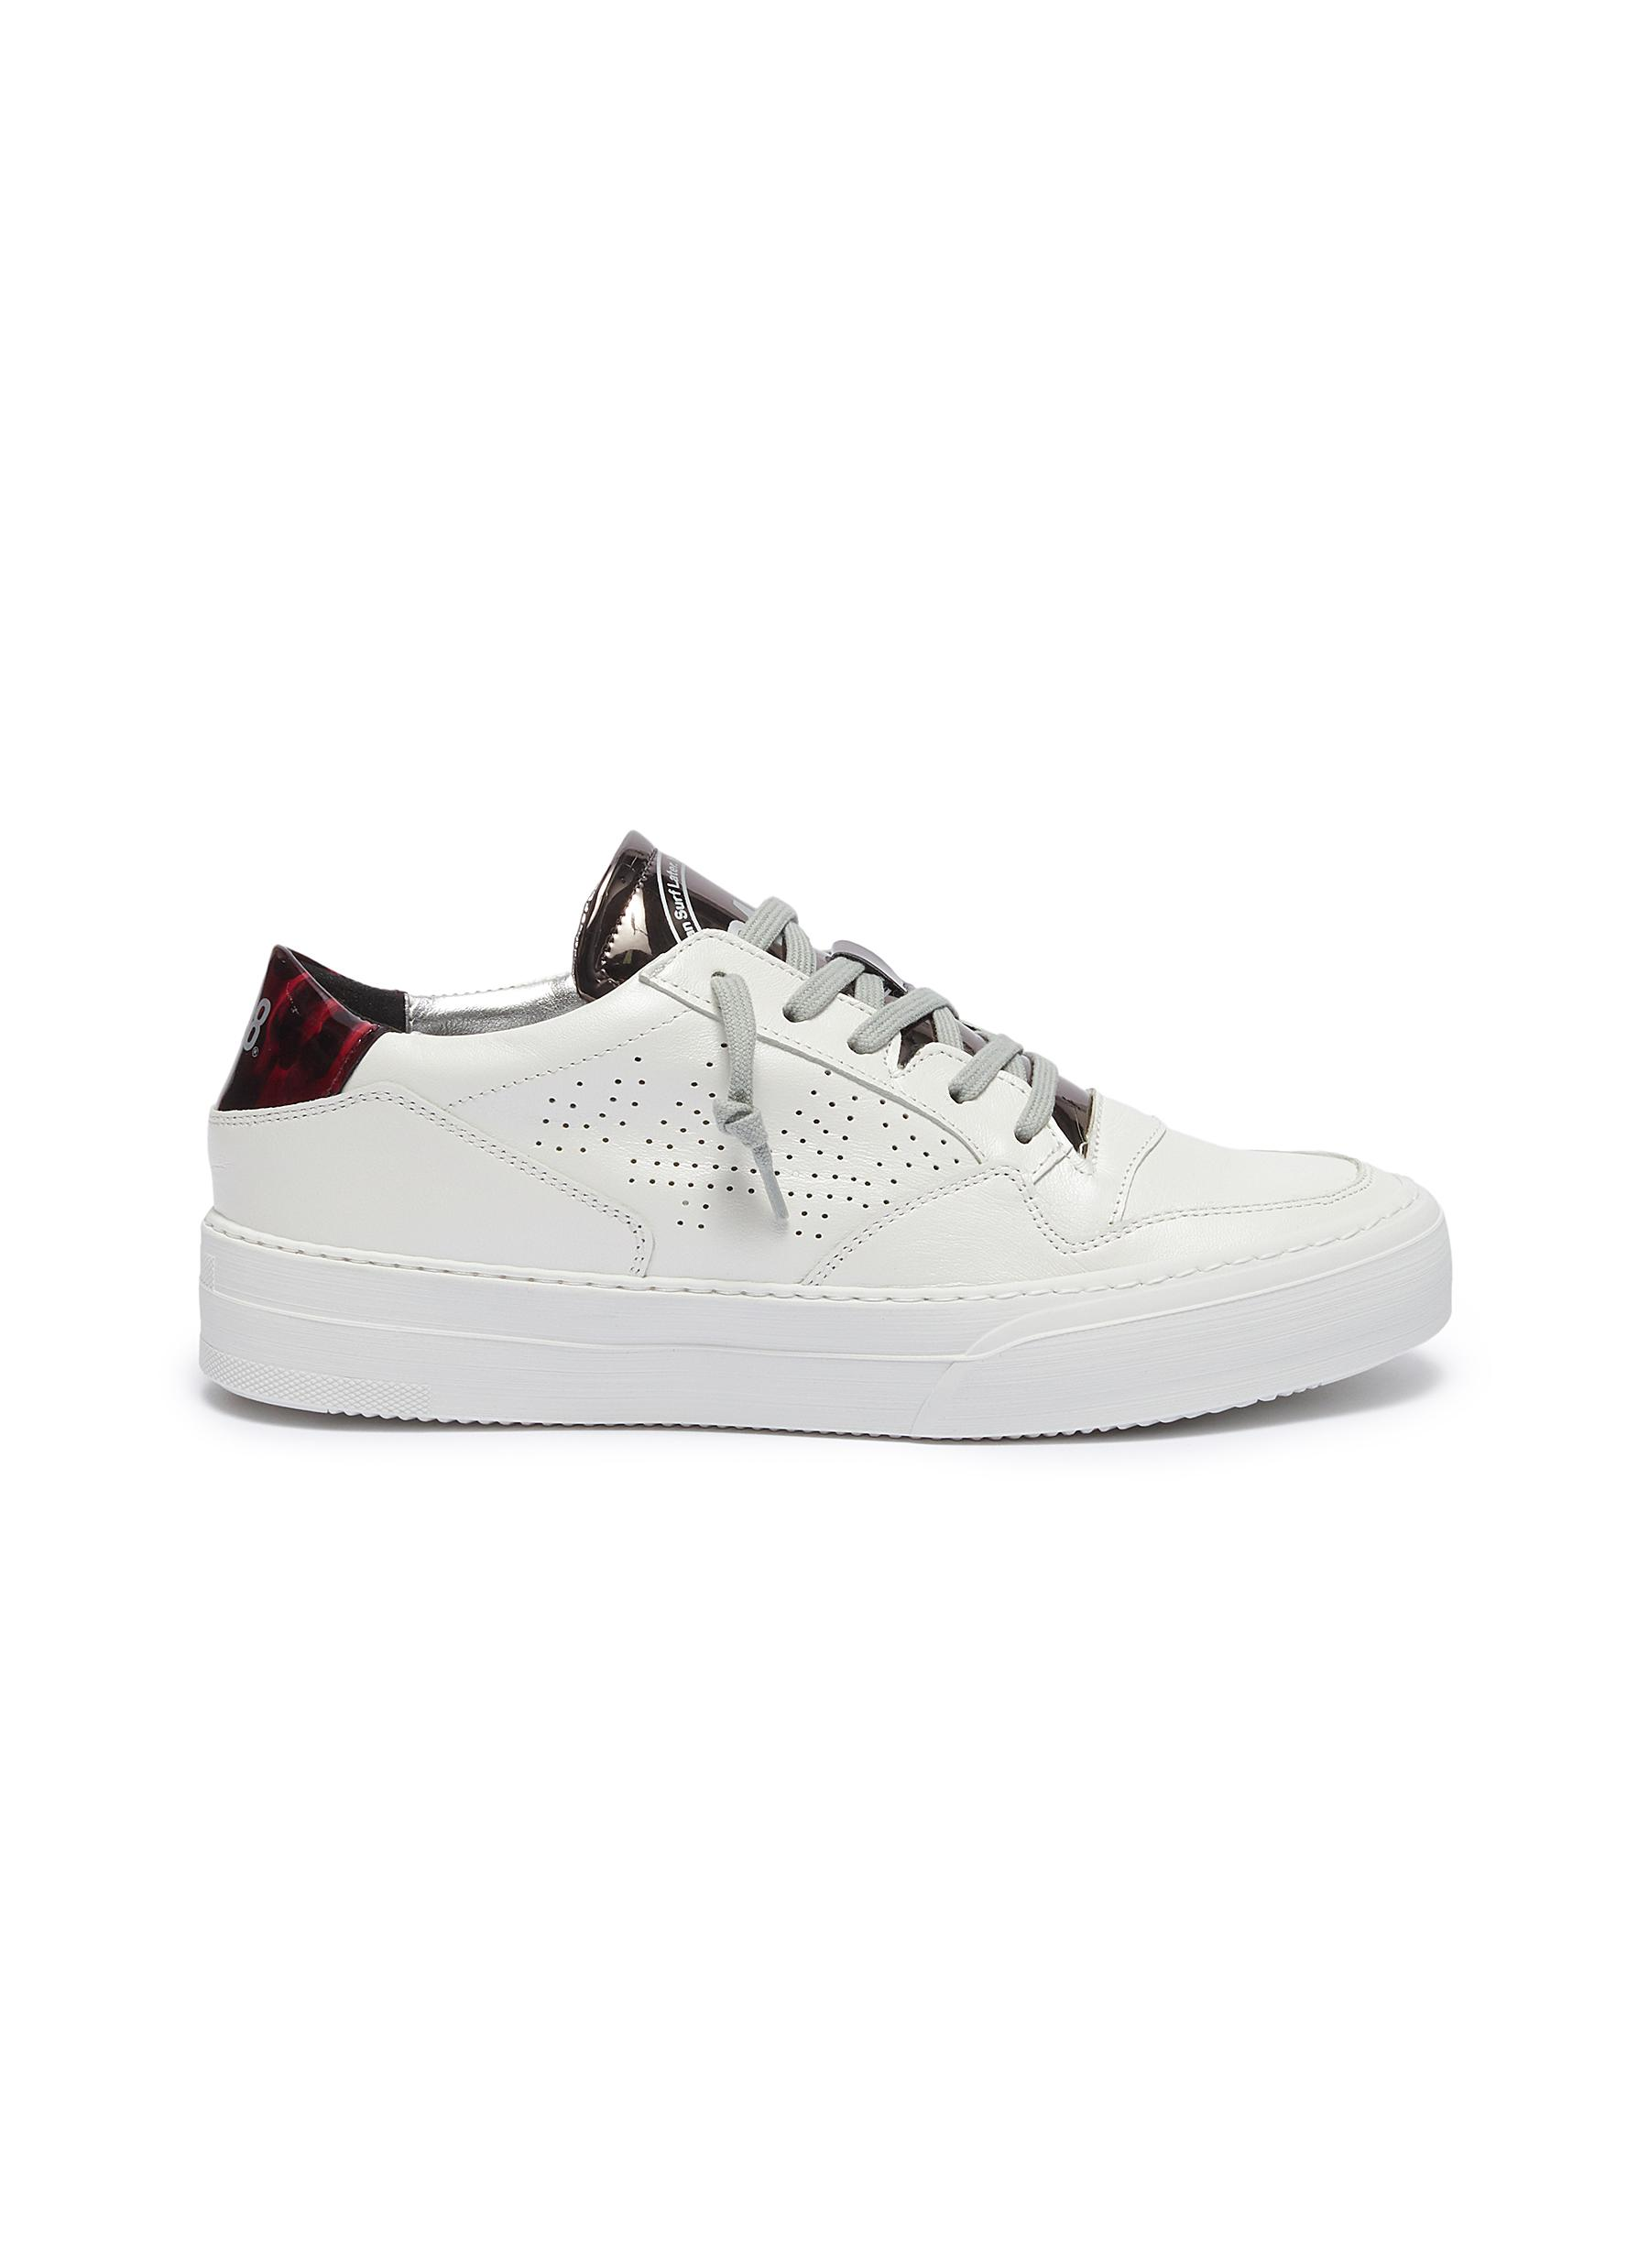 Space paneled leather sneakers by P448